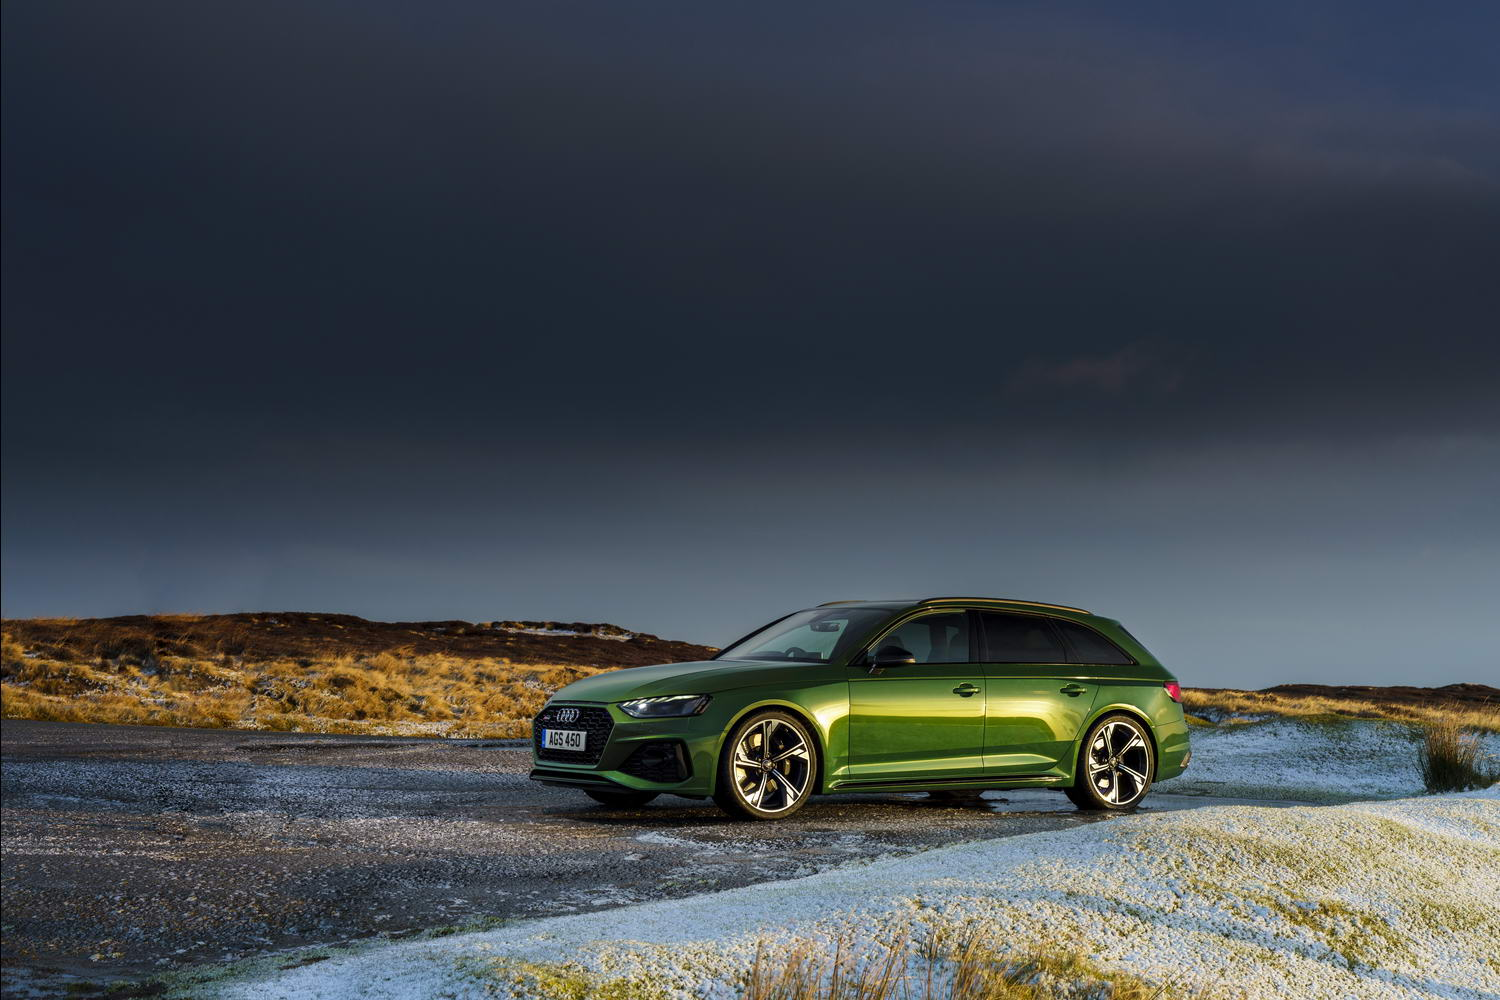 The Top 10 Green Cars